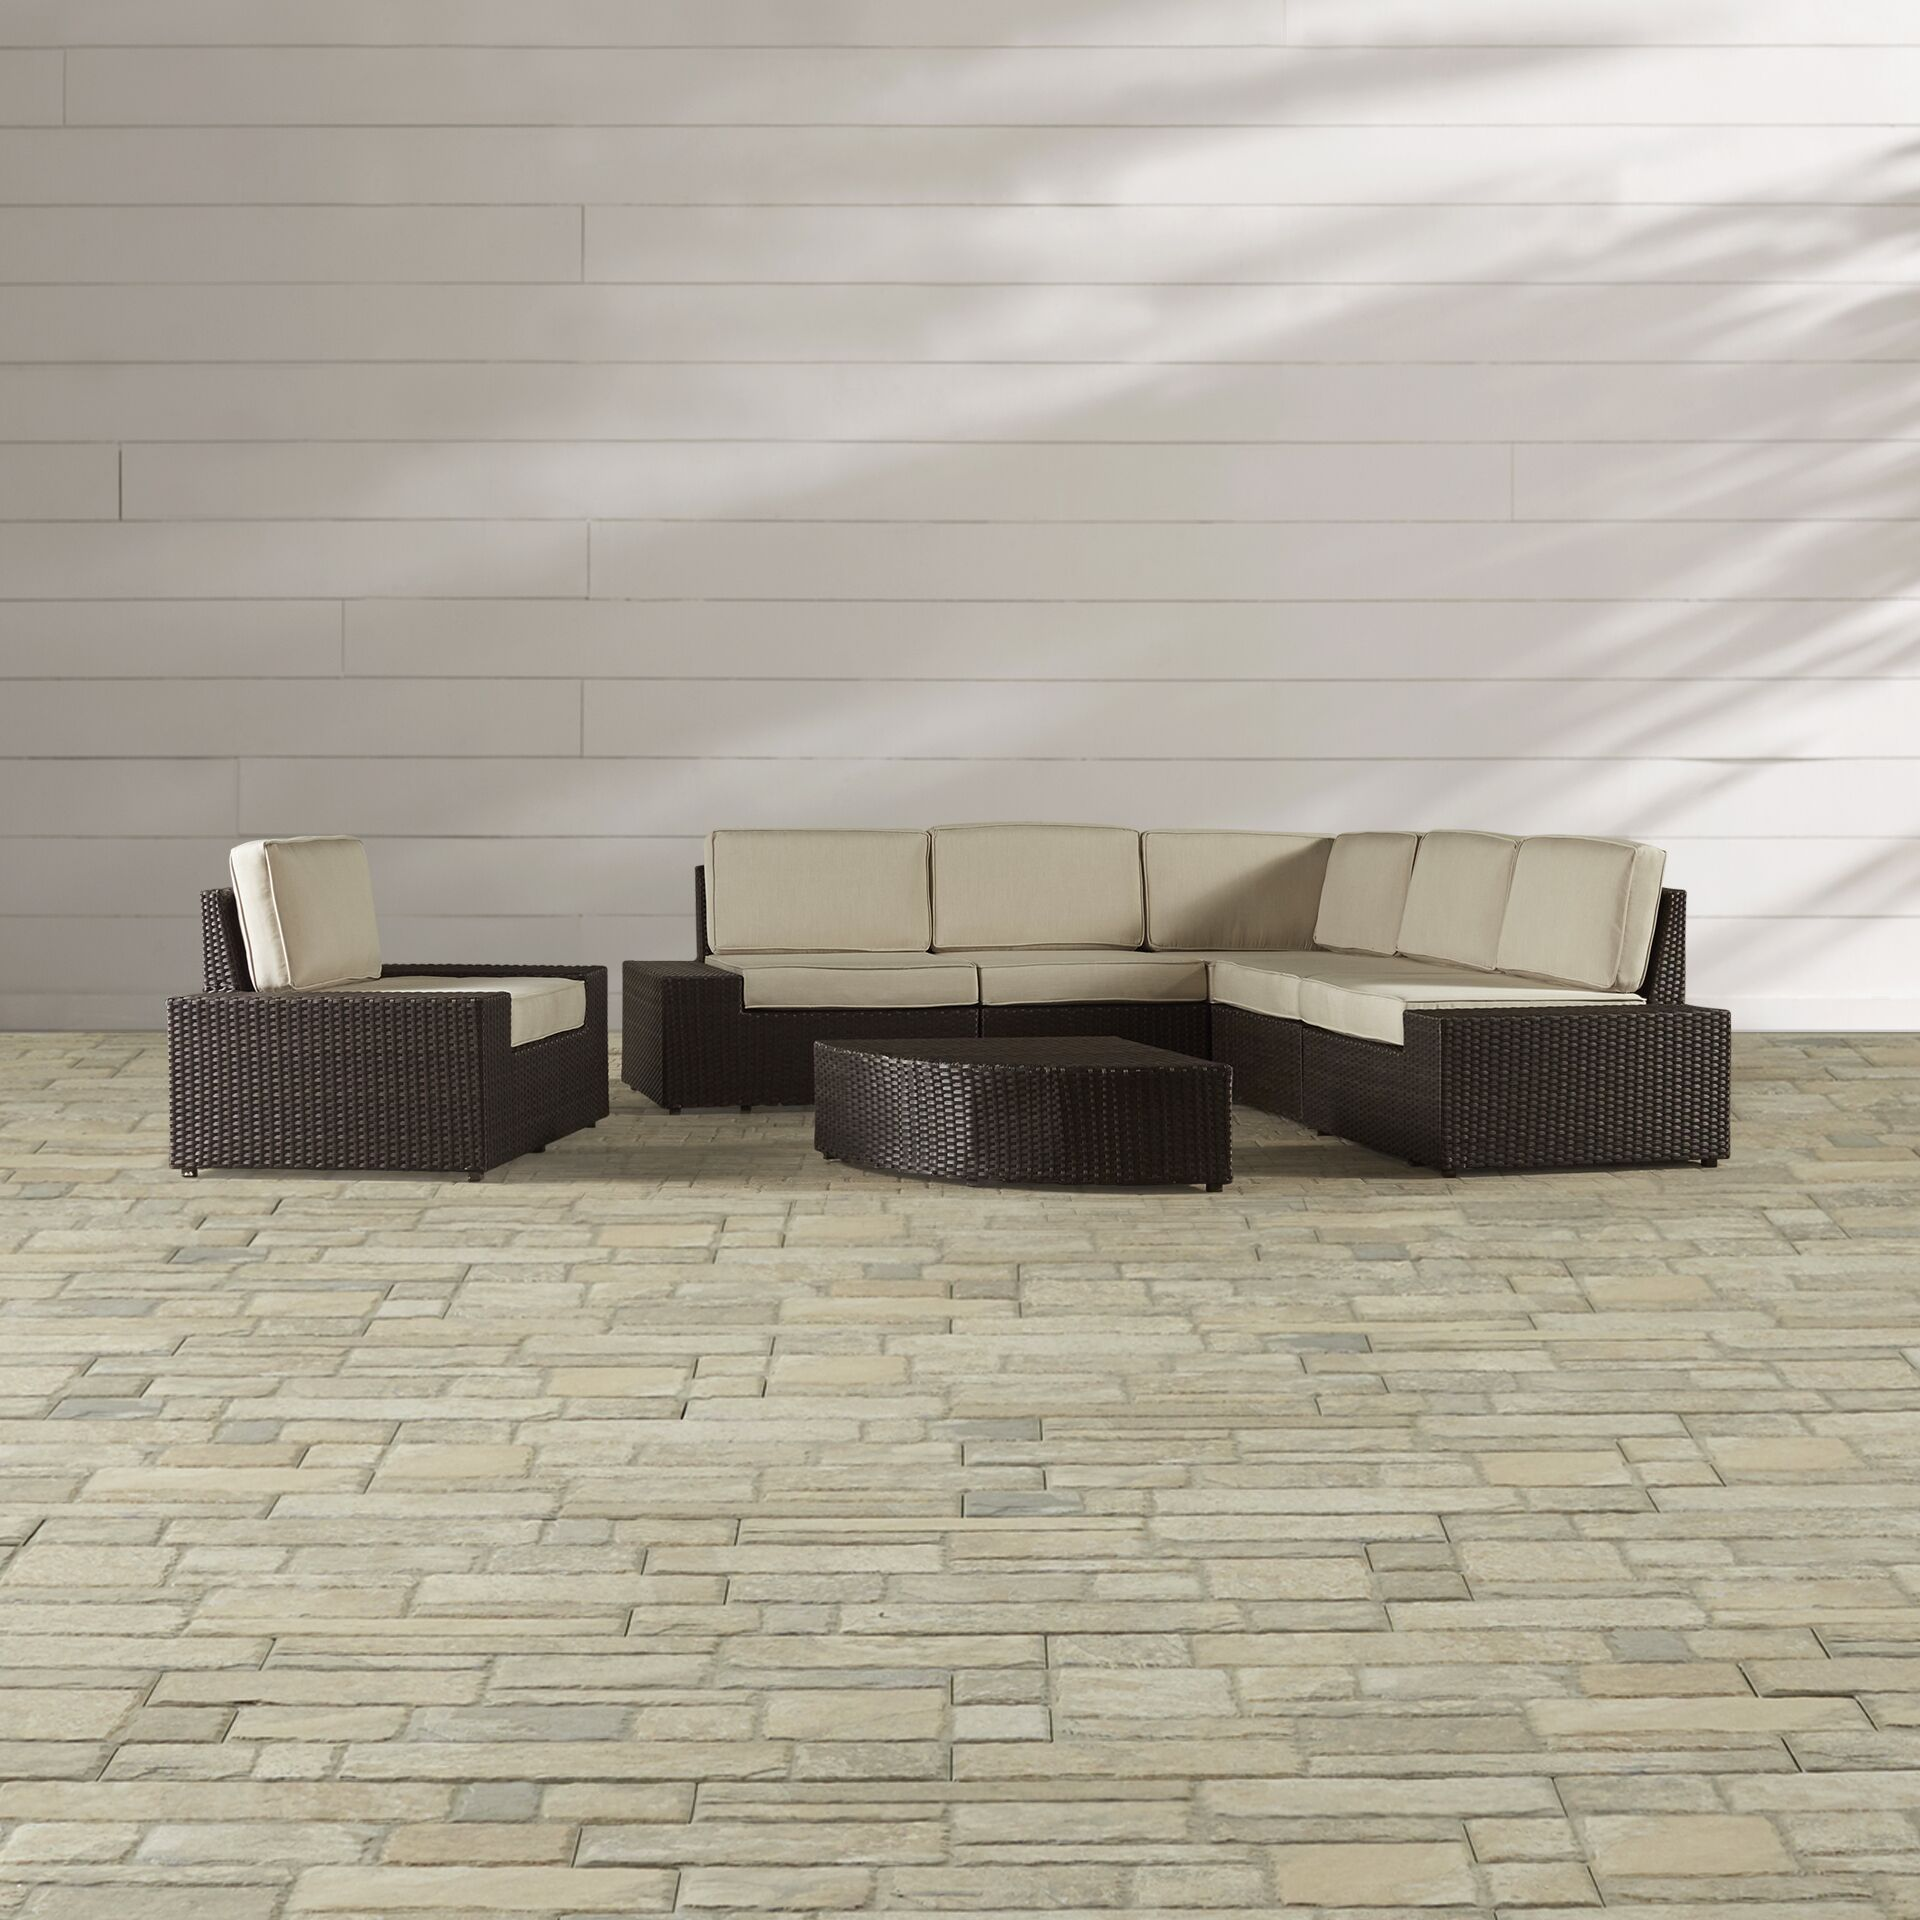 Woodall 7 Piece Sunbrella Sectional Set with Cushions